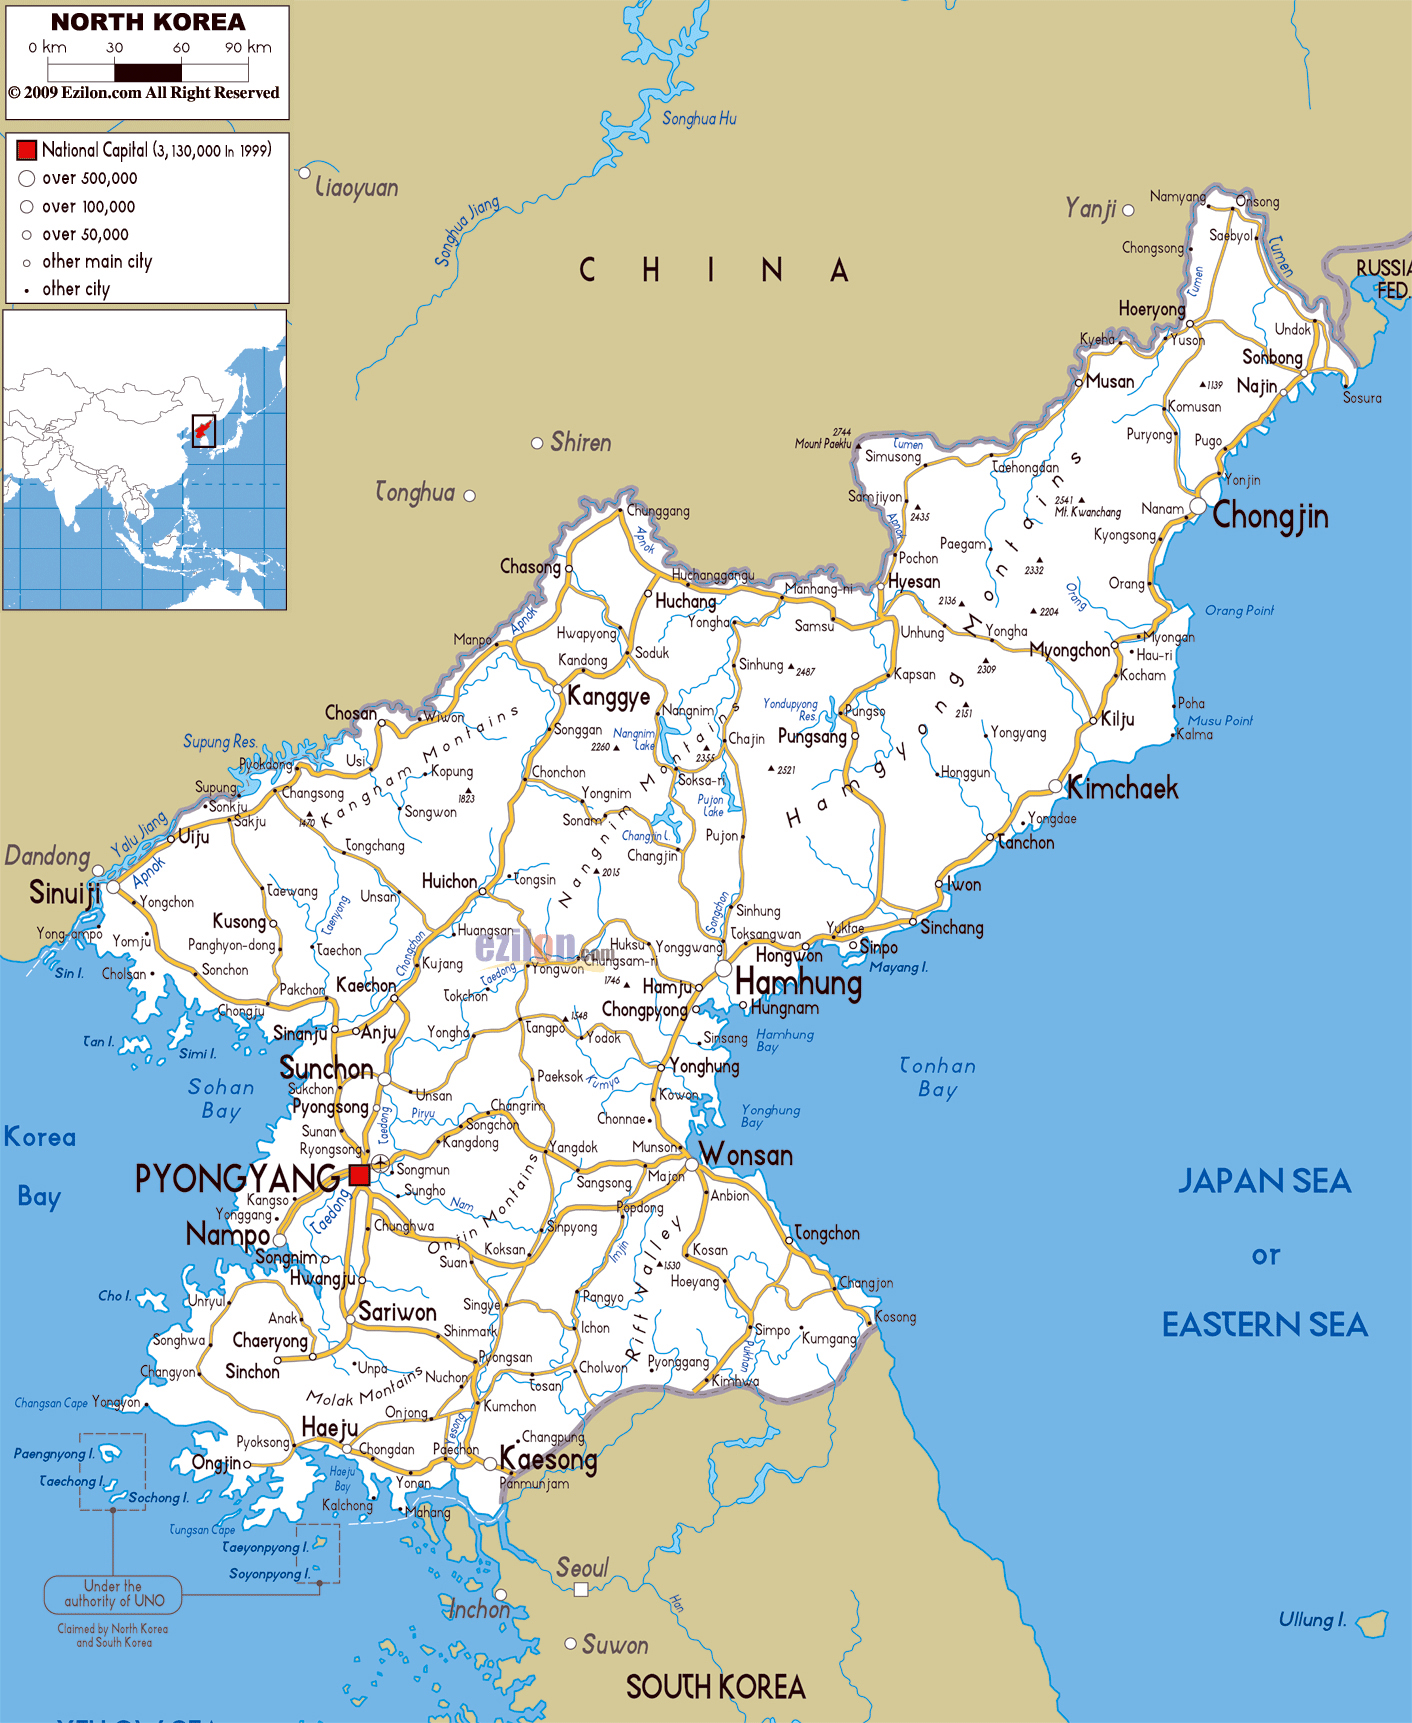 Large road map of North Korea with cities and airports ... on map of aruba airports, map of france airports, map of haiti airports, map of israel airports, map of taiwan airports, map of lithuania airports, map of south africa airports, map of iran airports, map of swaziland airports, map of bolivia airports, map of indonesia airports, map of myanmar airports, map of kazakhstan airports, map of the united states airports, map of japan airports, map of united kingdom airports, map of thailand airports, map of zimbabwe airports, map of colombia airports, map of ireland airports,